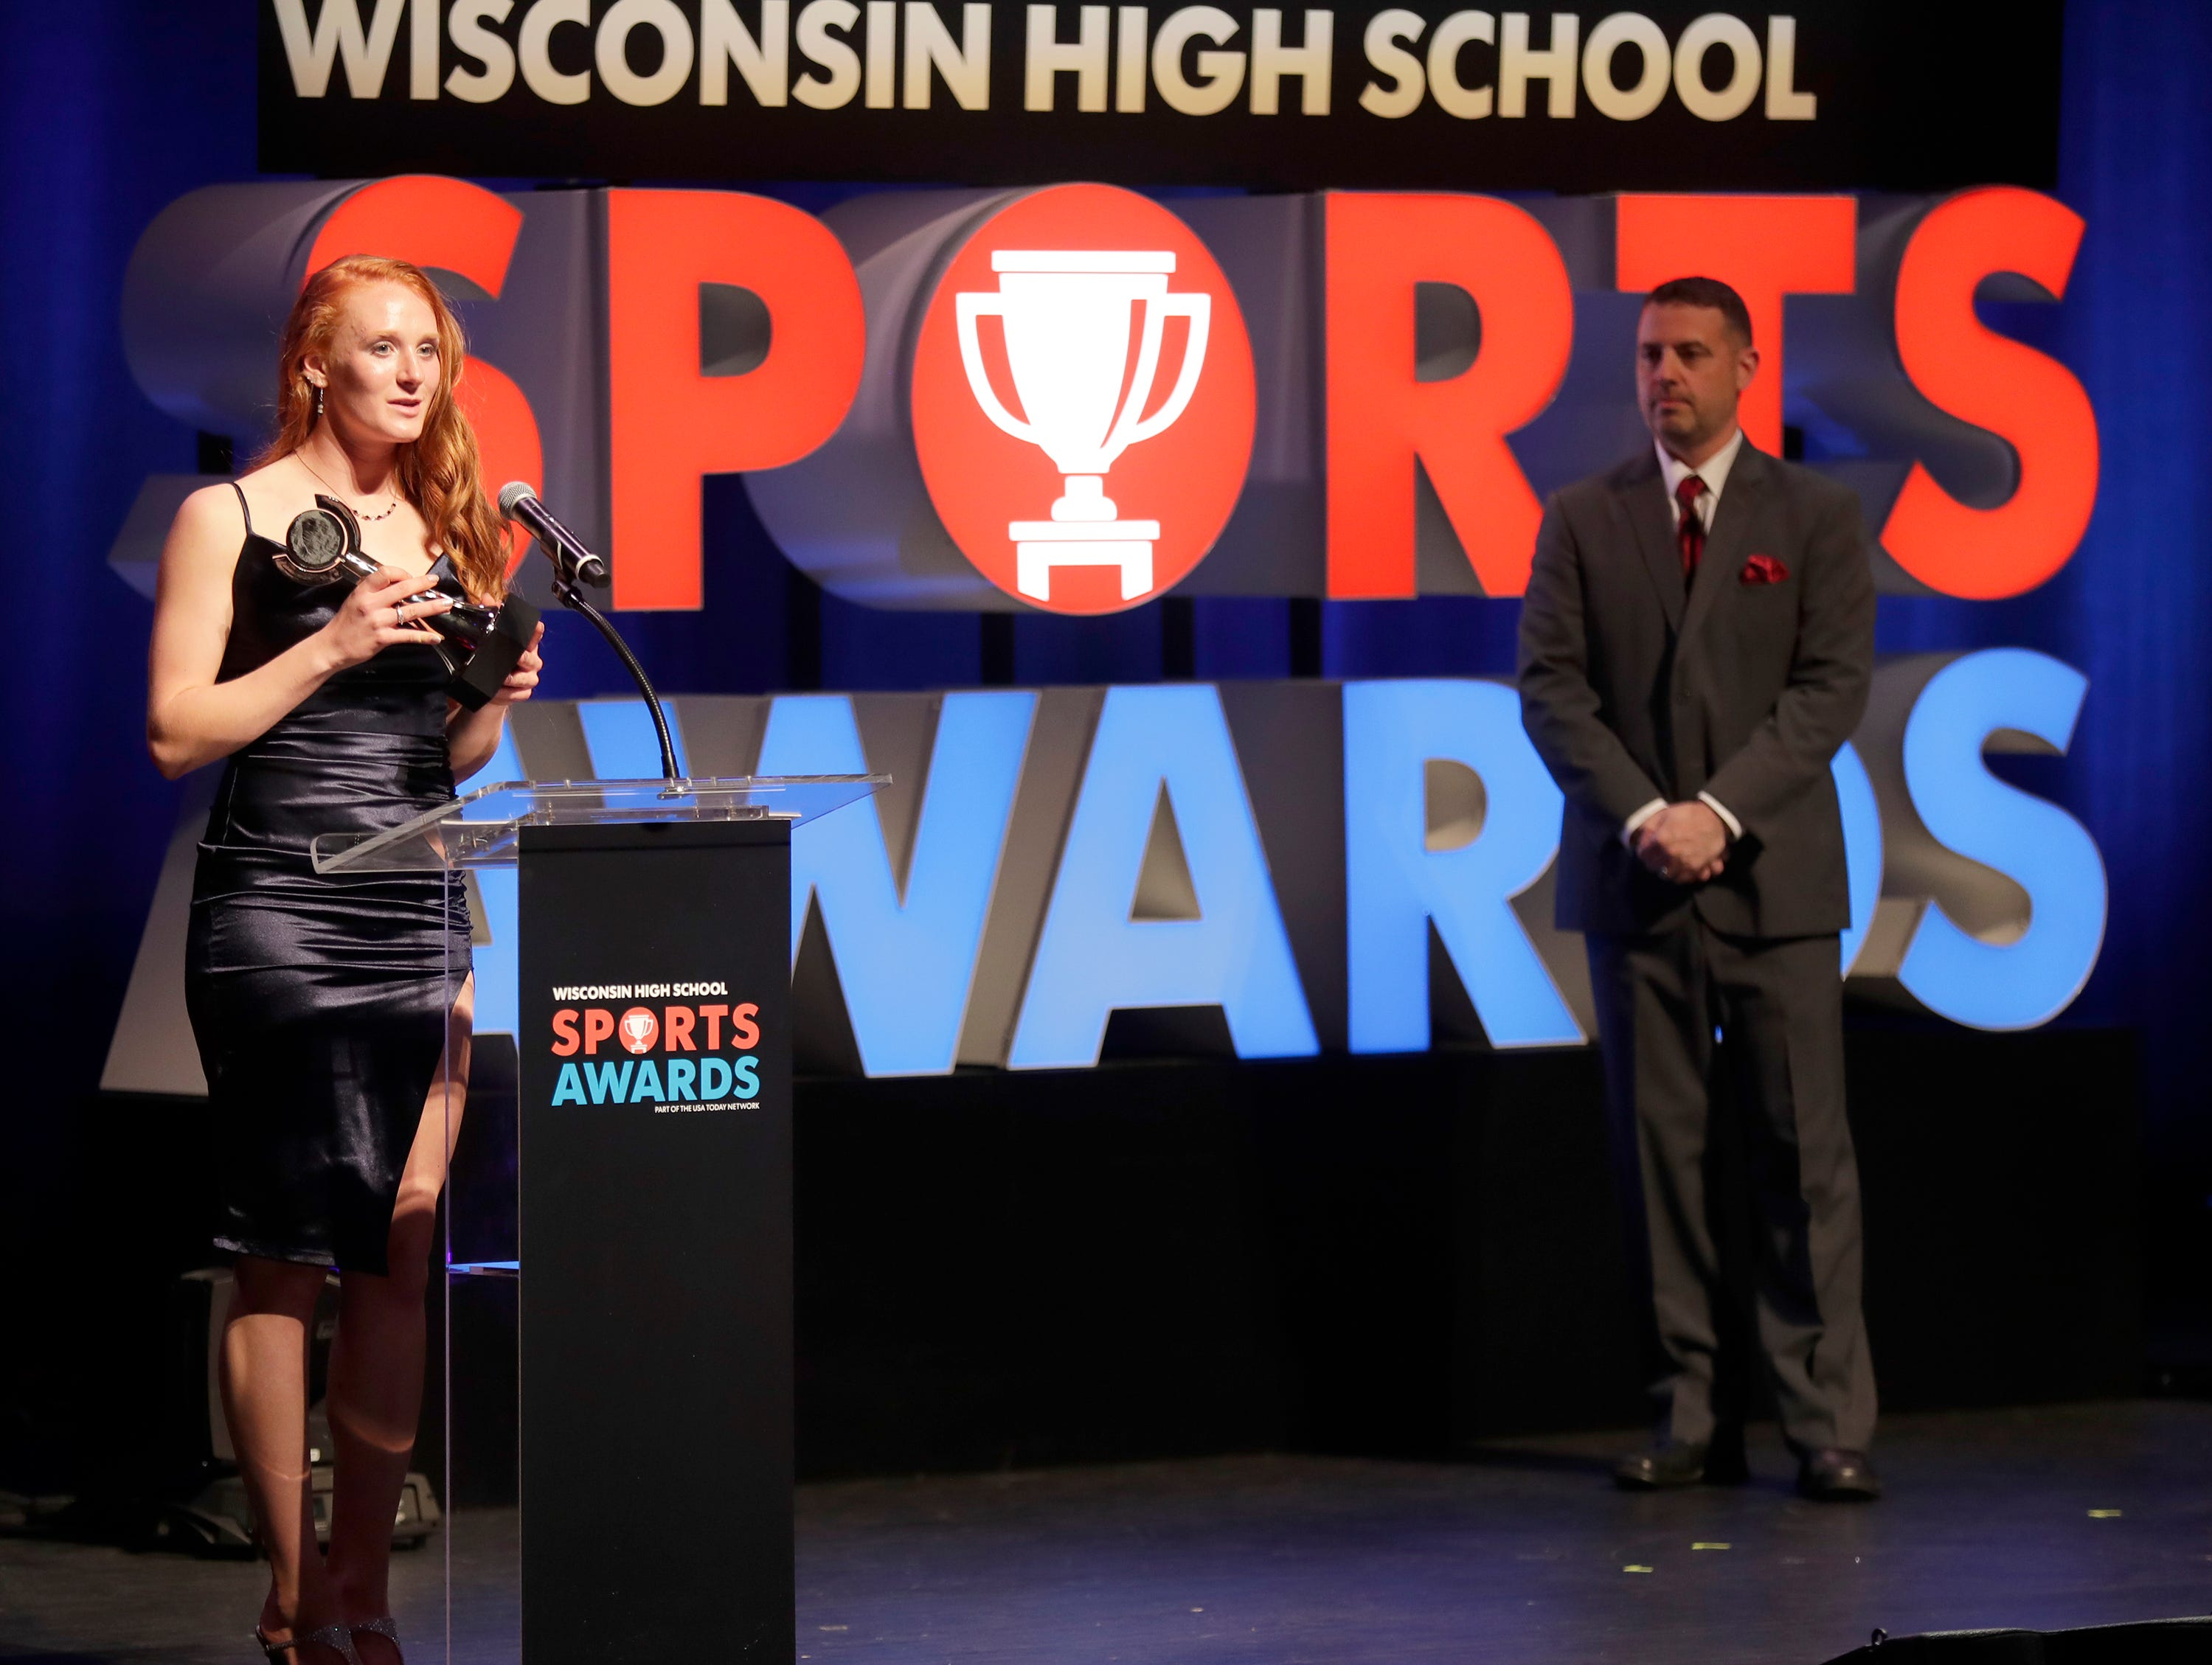 Softball Player of the Year, Oshkosh north's Syd Supple during the Wisconsin High School Sports Awards show at the Fox Cities Performing Arts Center on Wednesday, May 8, 2019, in Appleton, Wis. Olympic champion Michael Phelps was the guest speaker. The annual event was presented by USA TODAY NETWORK-Wisconsin.  Wm. Glasheen/USA TODAY NETWORK-Wisconsin.